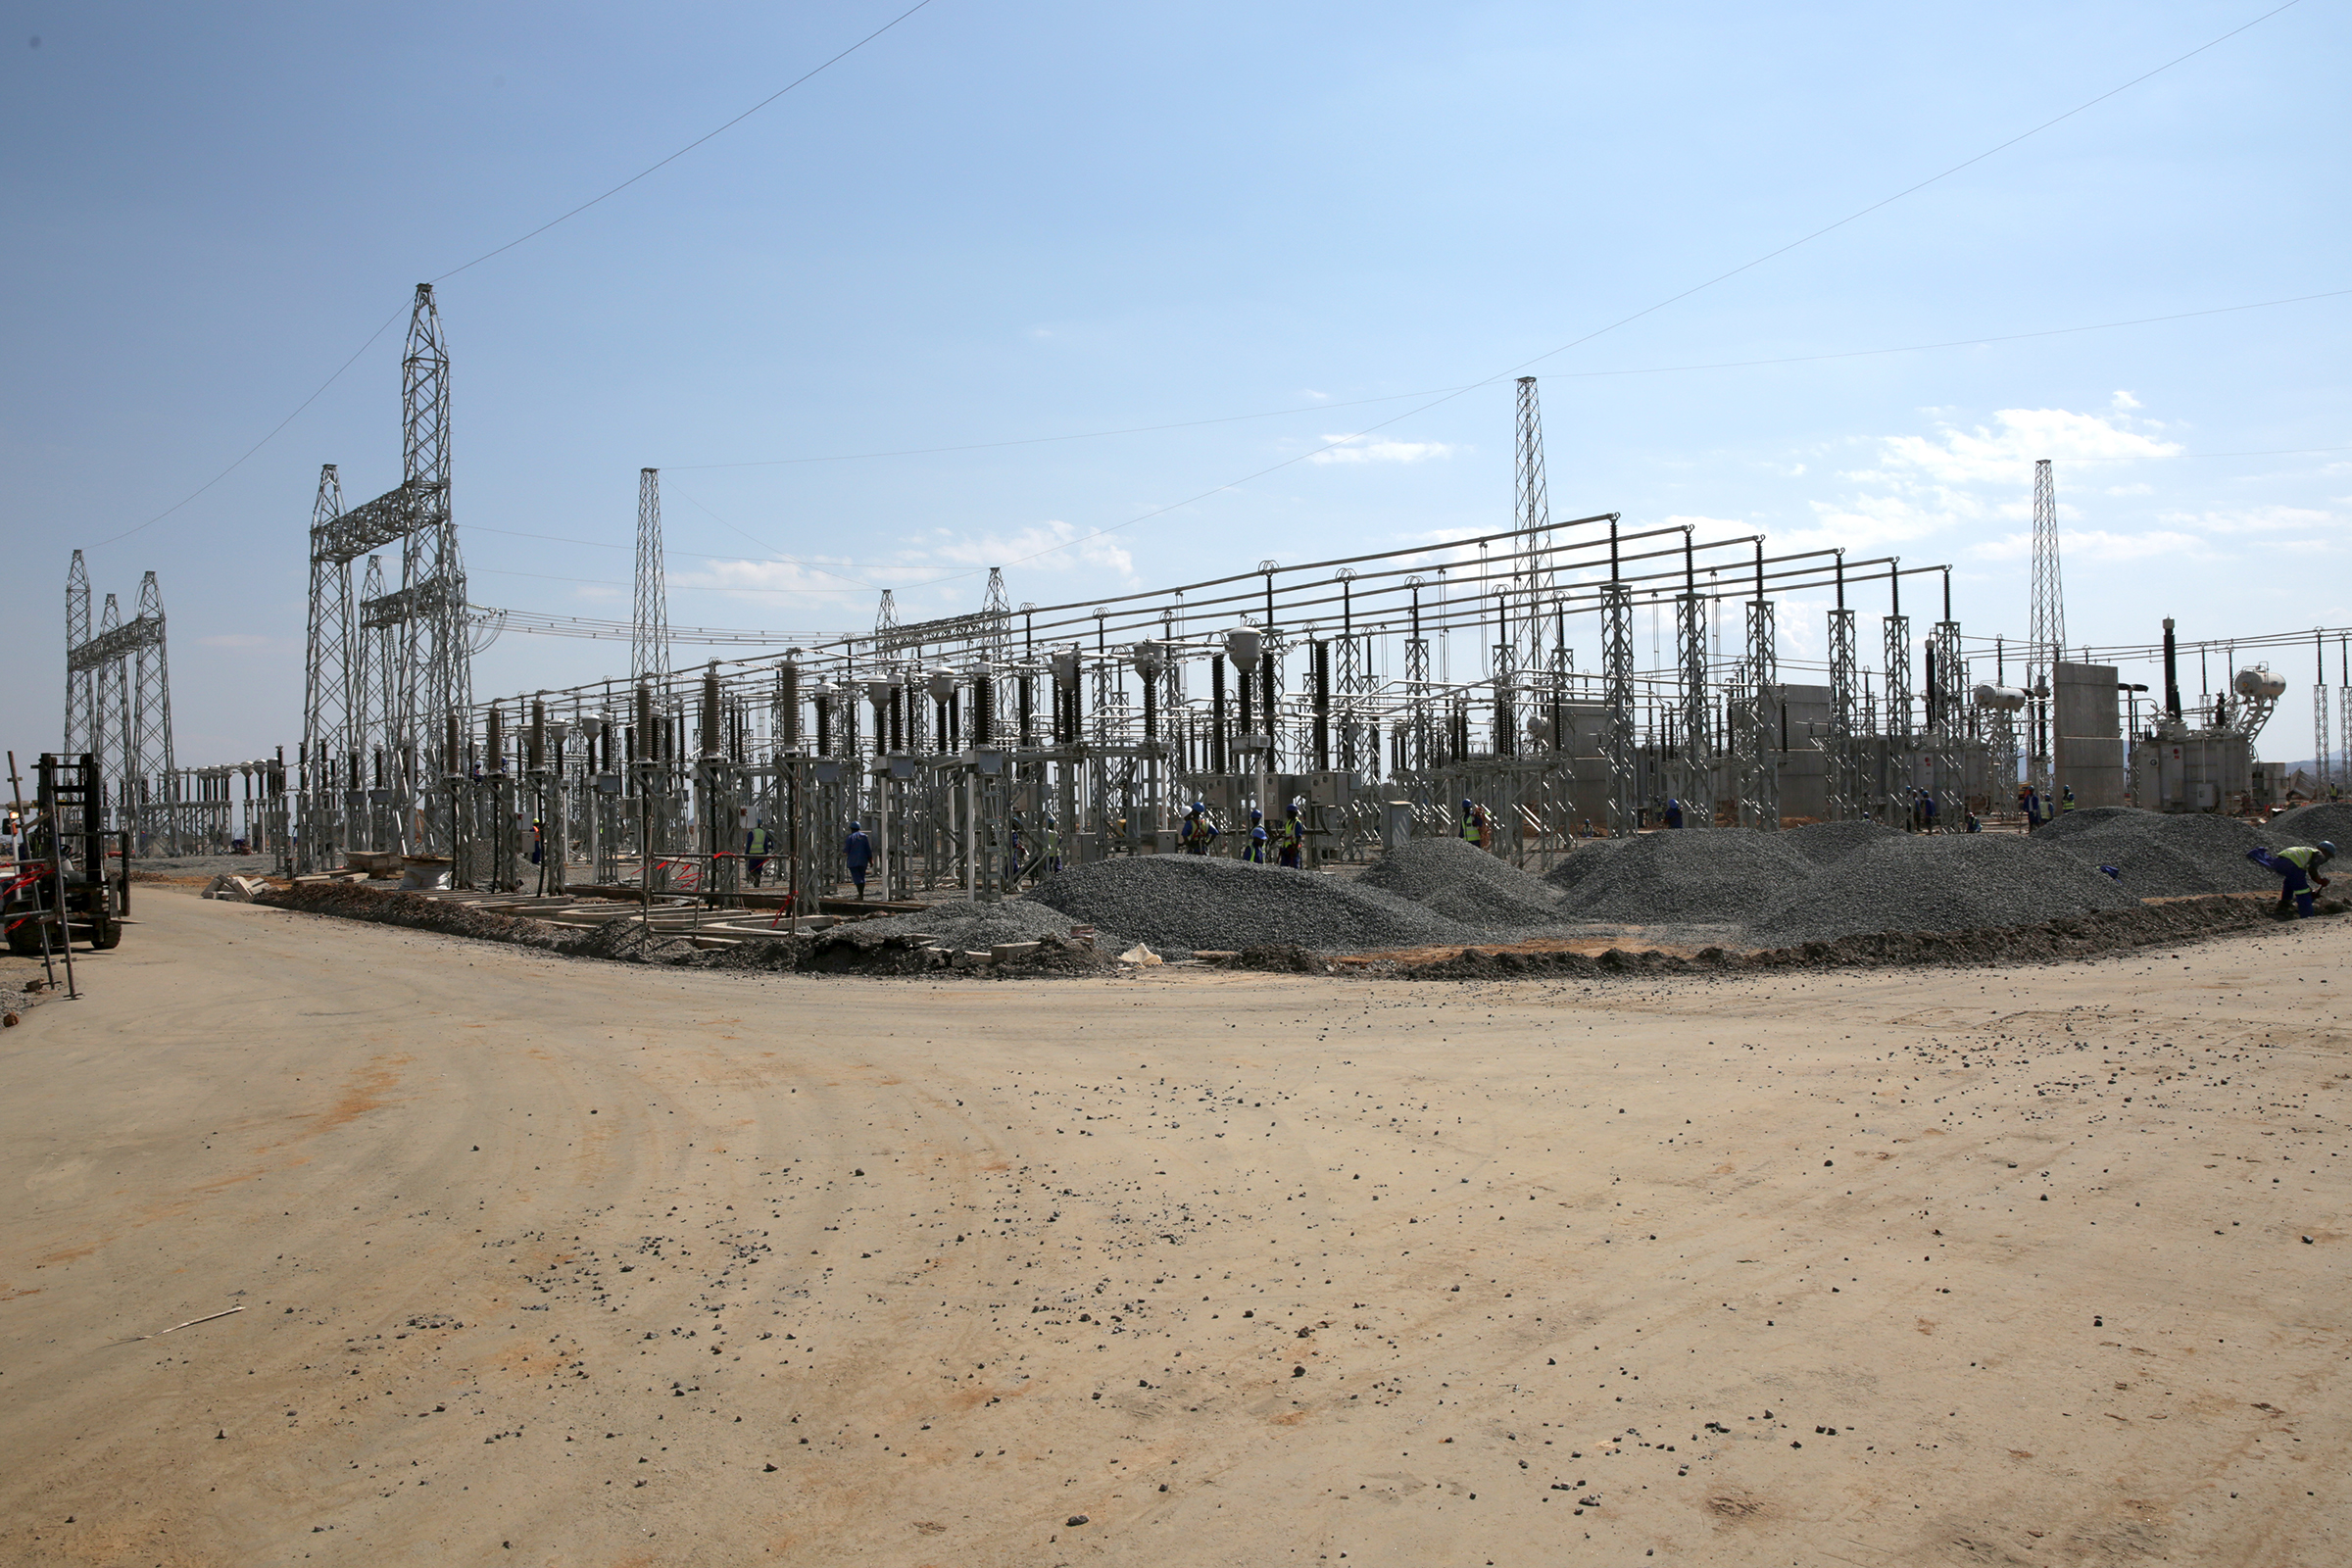 Wide-angle photograph of transmission substation